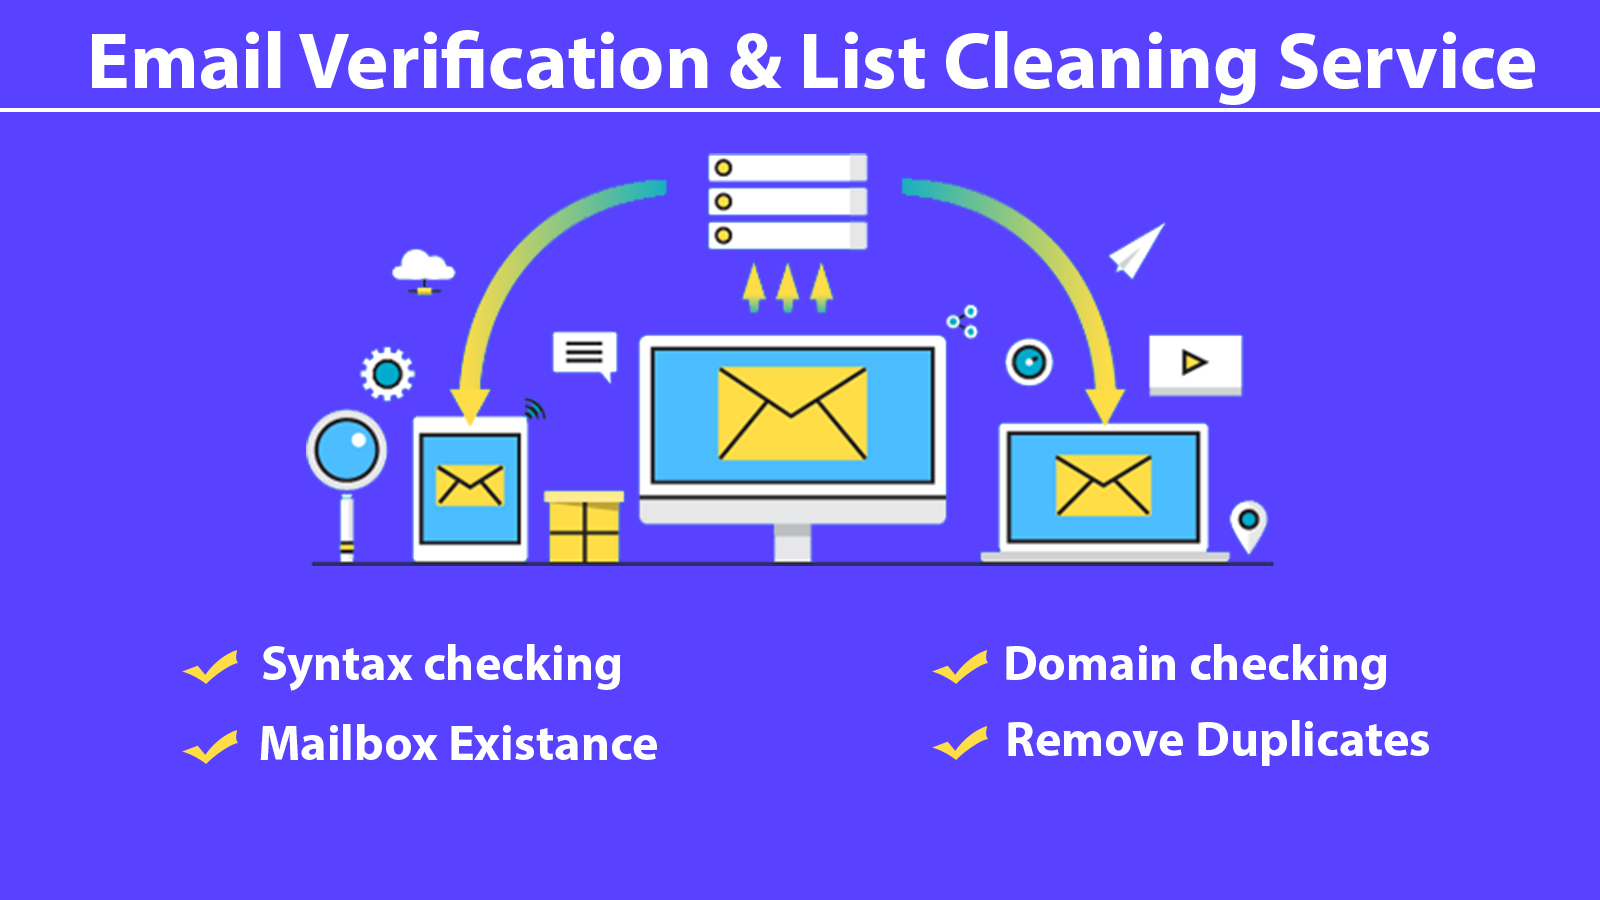 Email verification and list cleaning 200k